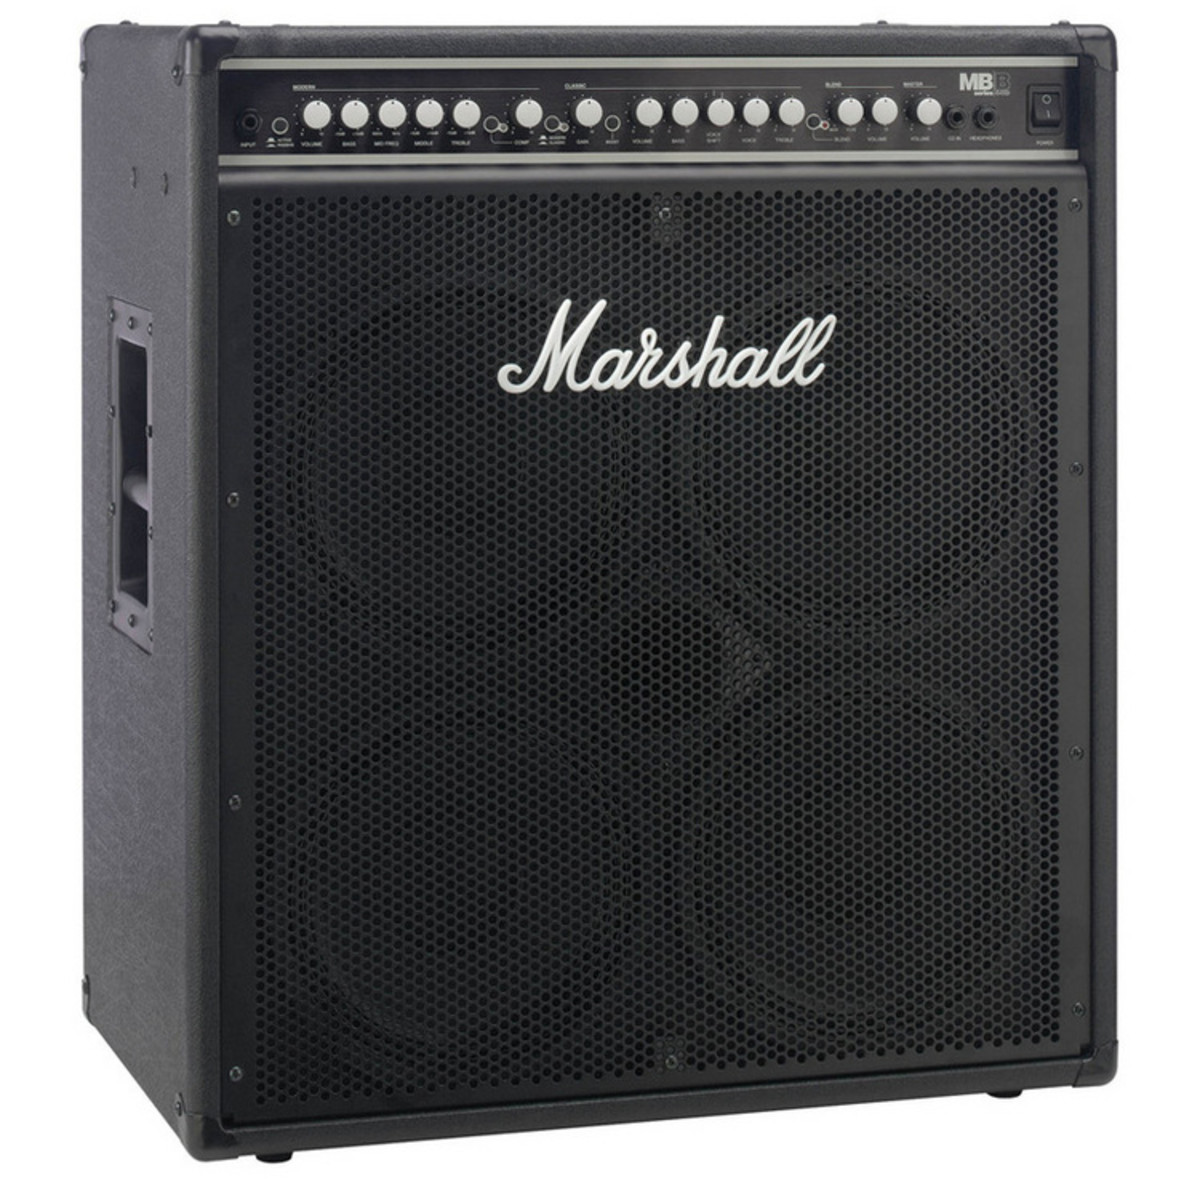 disc marshall mb4410 450w 4x10 bass combo amp 2 channel at. Black Bedroom Furniture Sets. Home Design Ideas